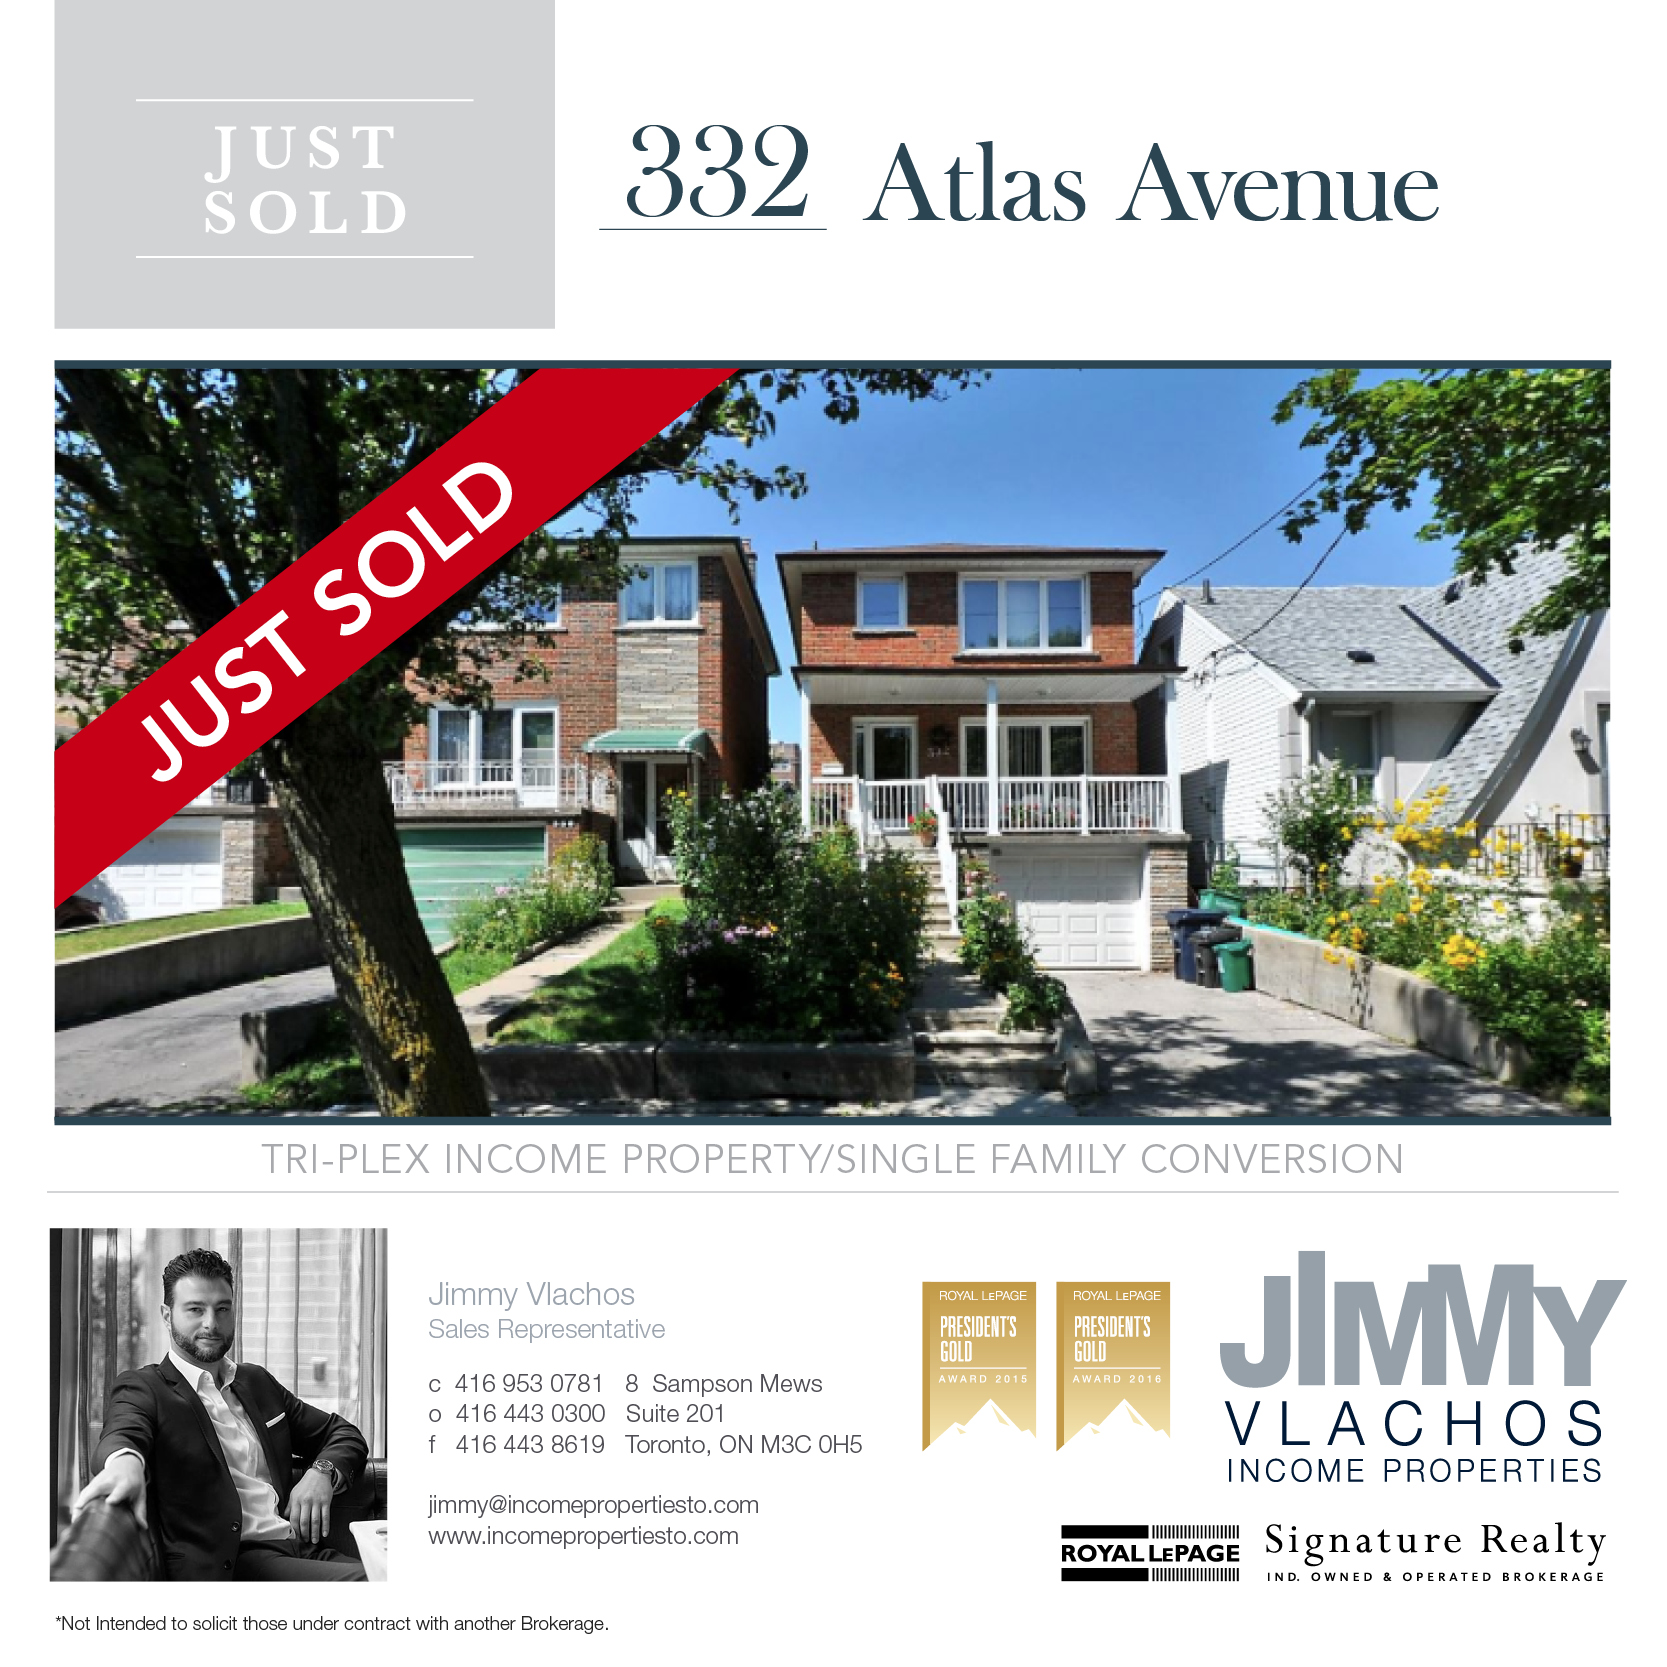 332 Atlas Ave - SOLD